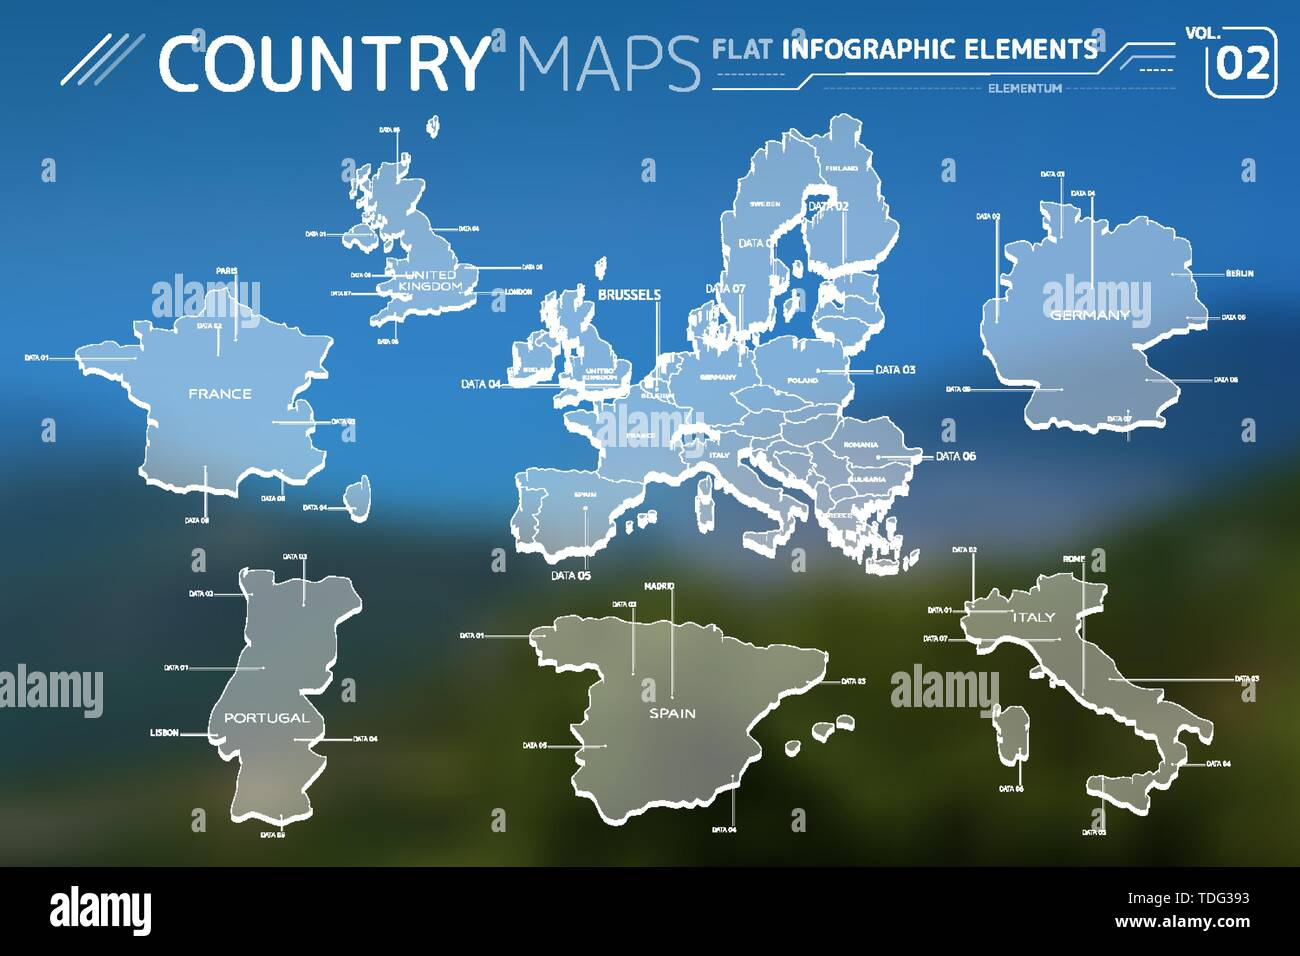 Map Of Spain Portugal And Italy.Europe United Kingdom France Portugal Spain Italy And Germany